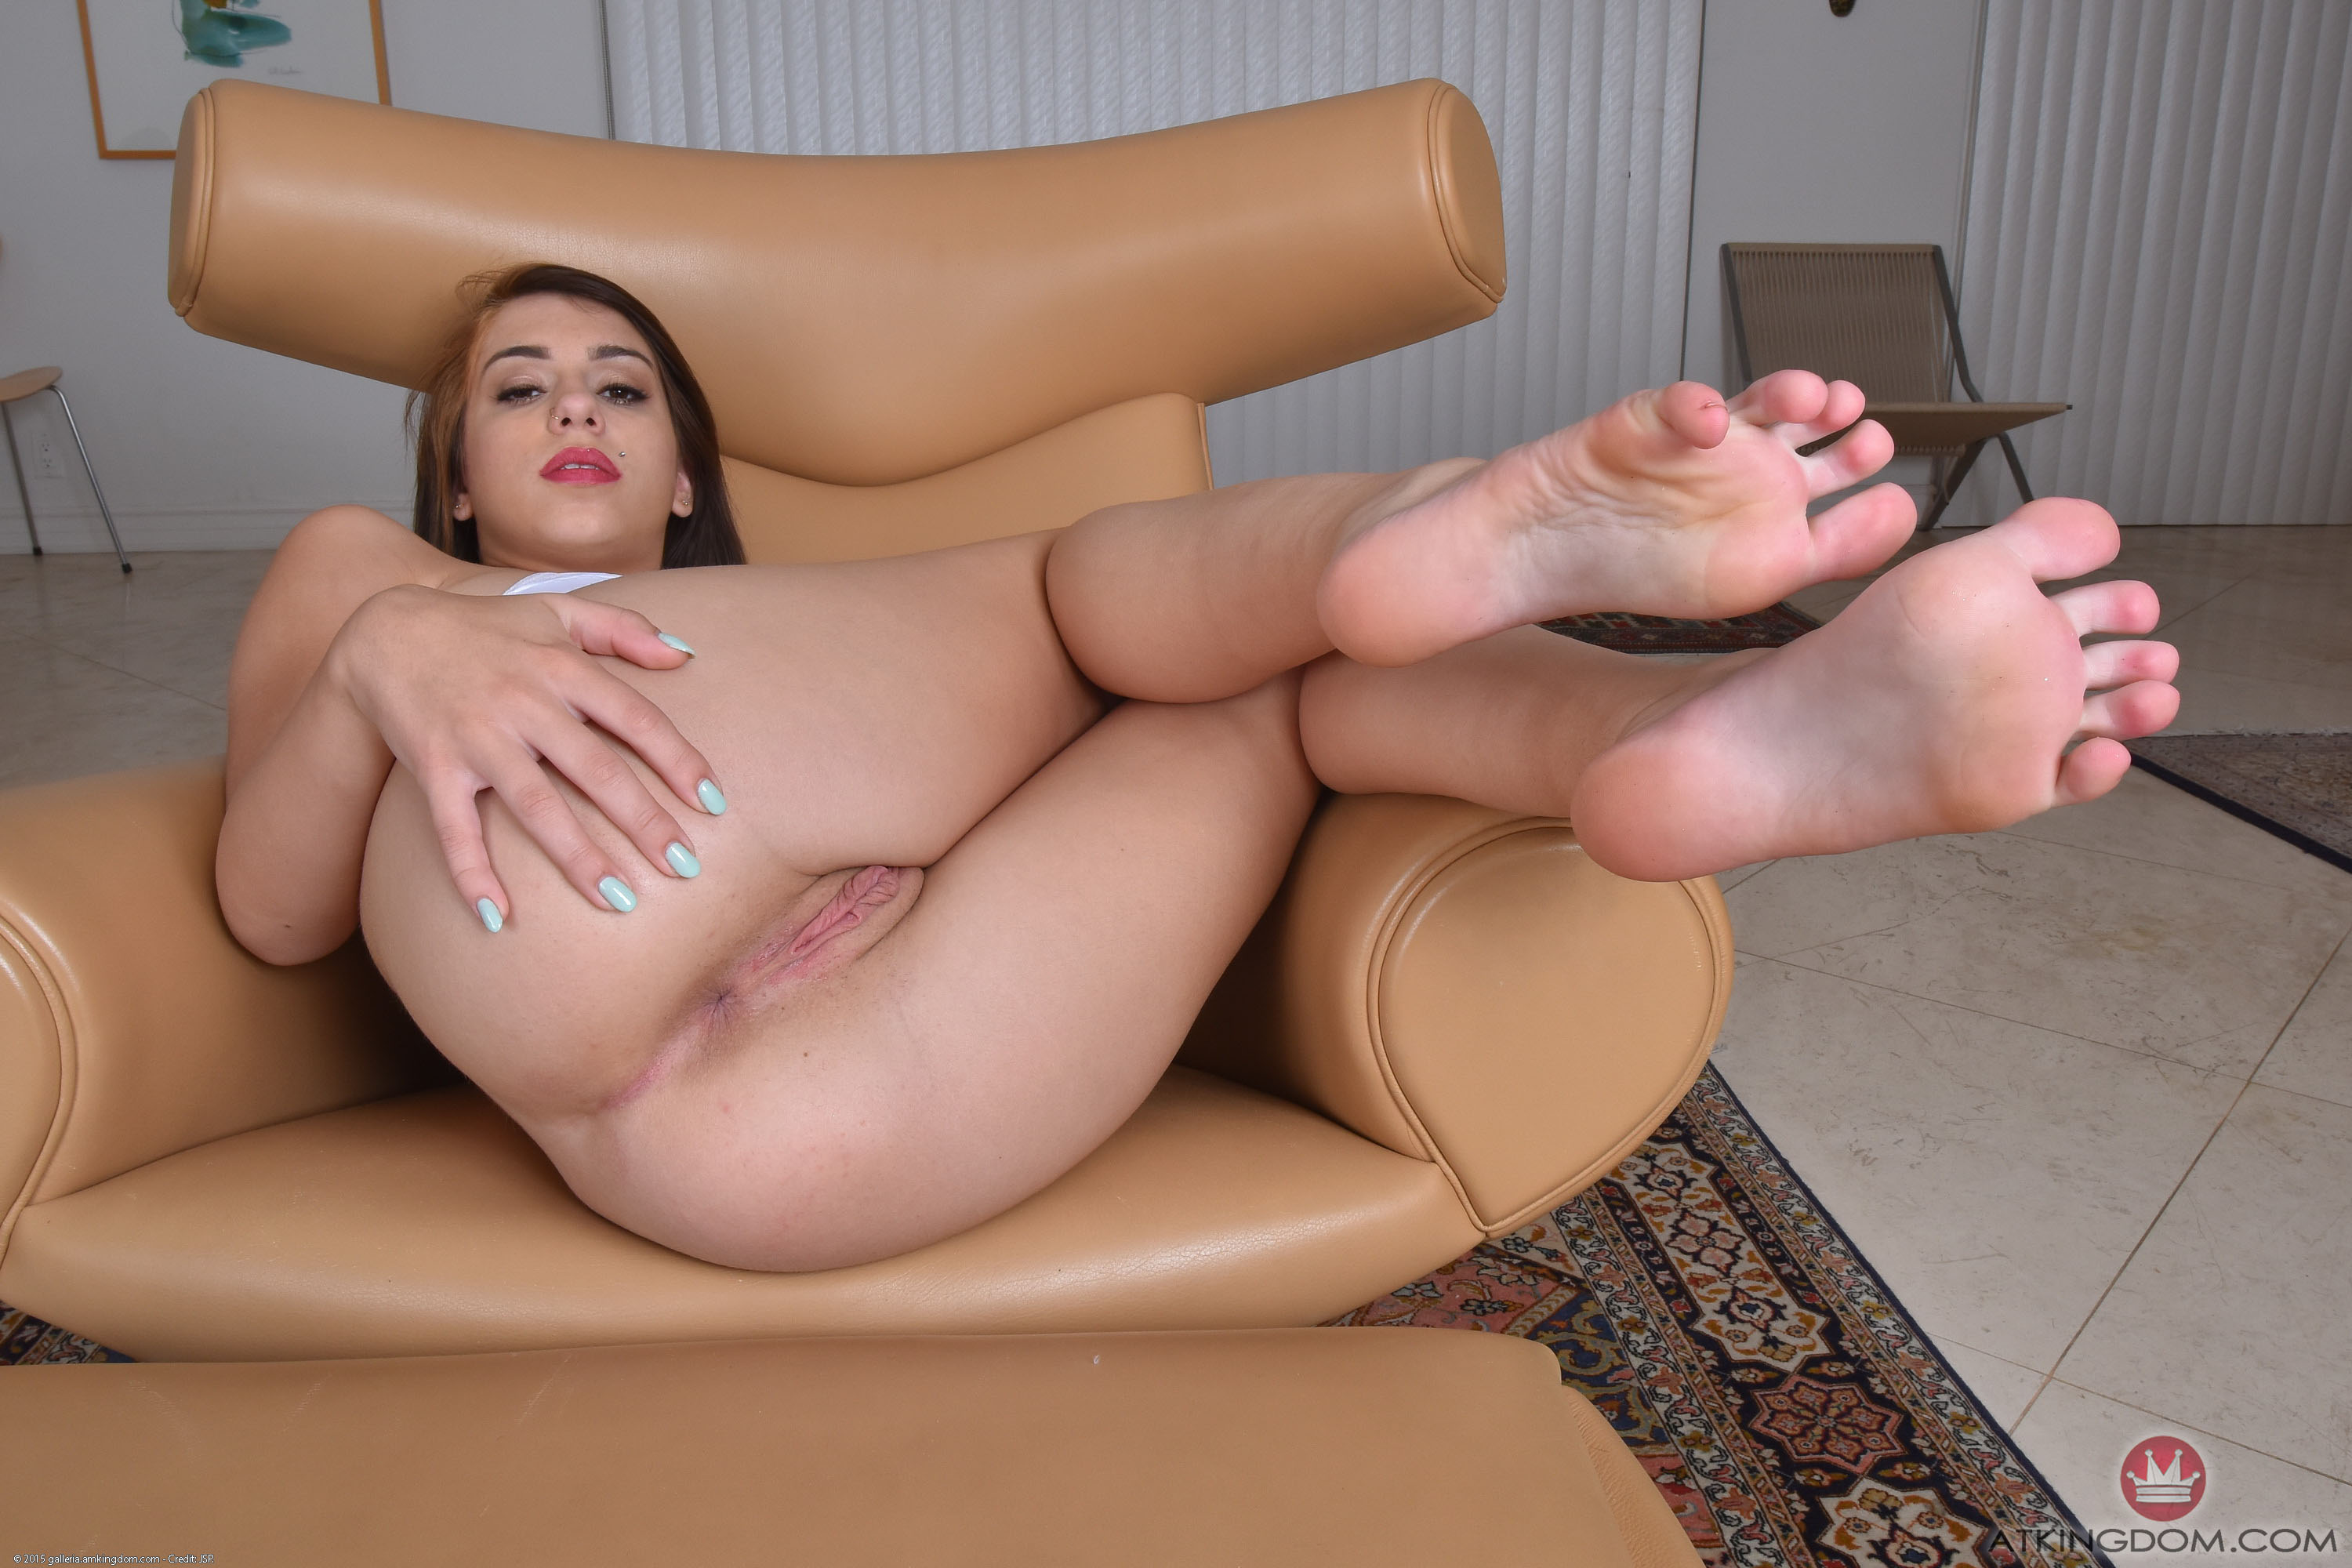 white-girl-feet-pussy-pics-super-nude-boobs